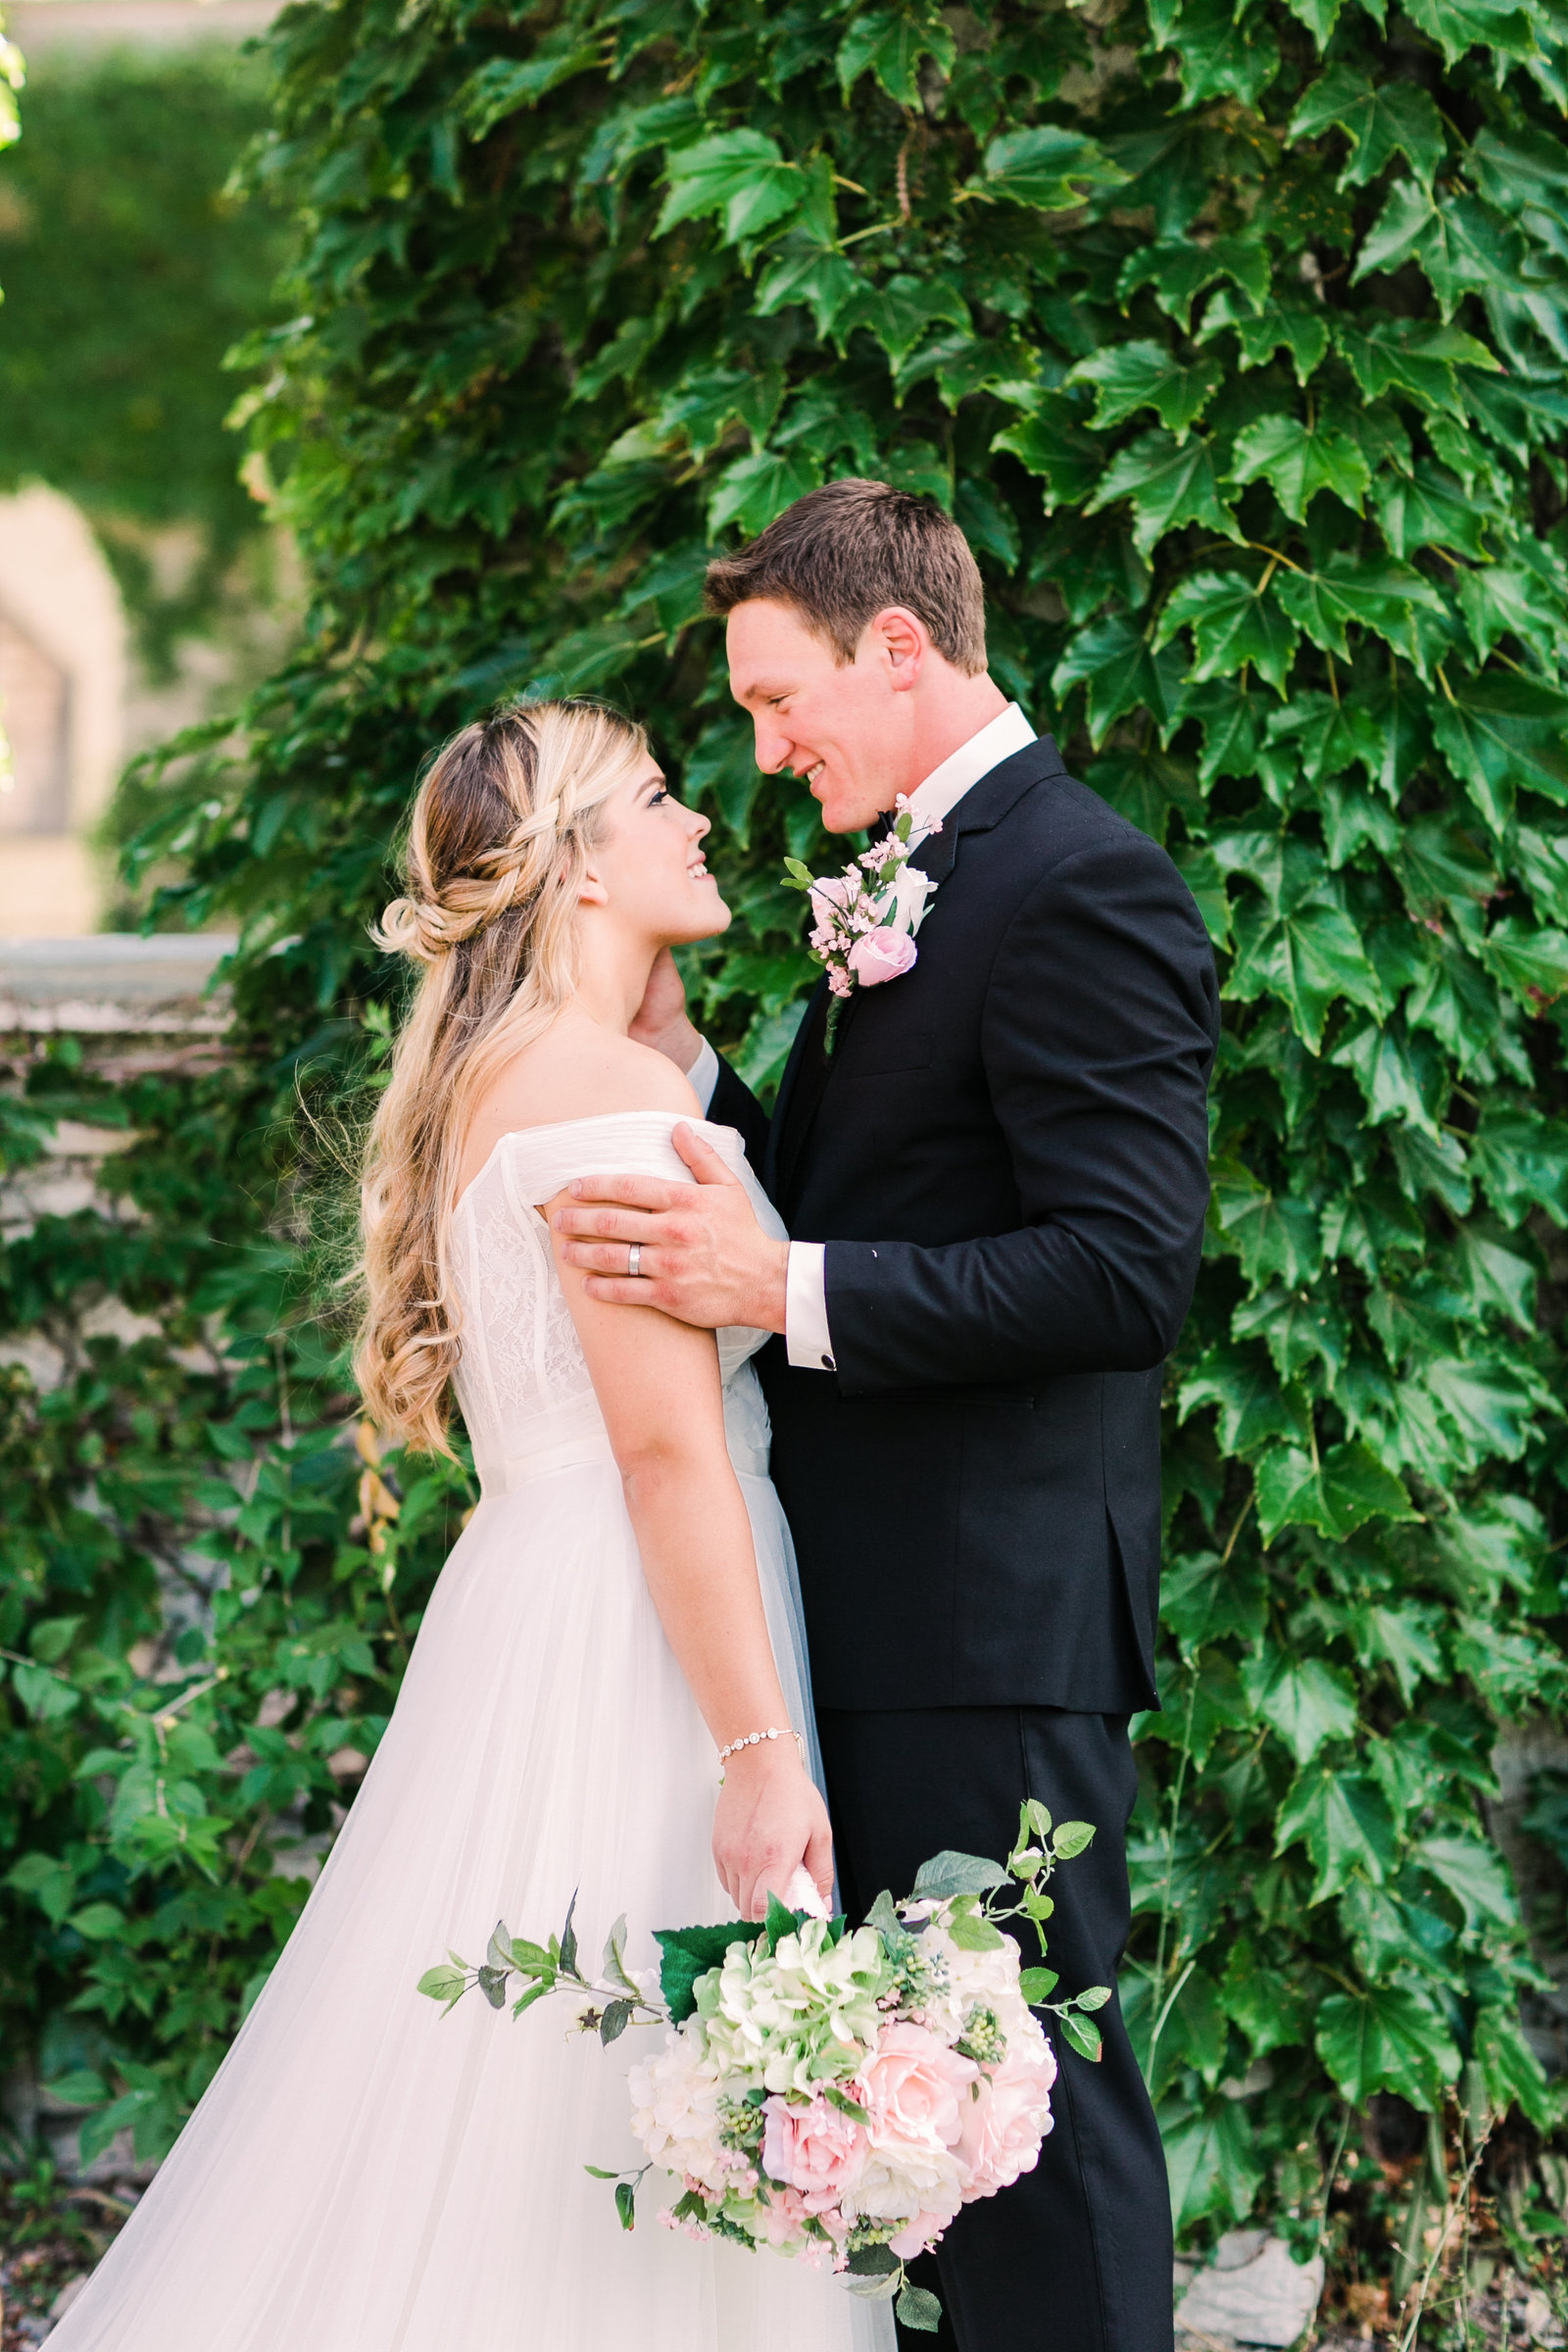 Groom, Levi, gazes at his bride, Katlyn, while embracing her next to an ivy covered wall.